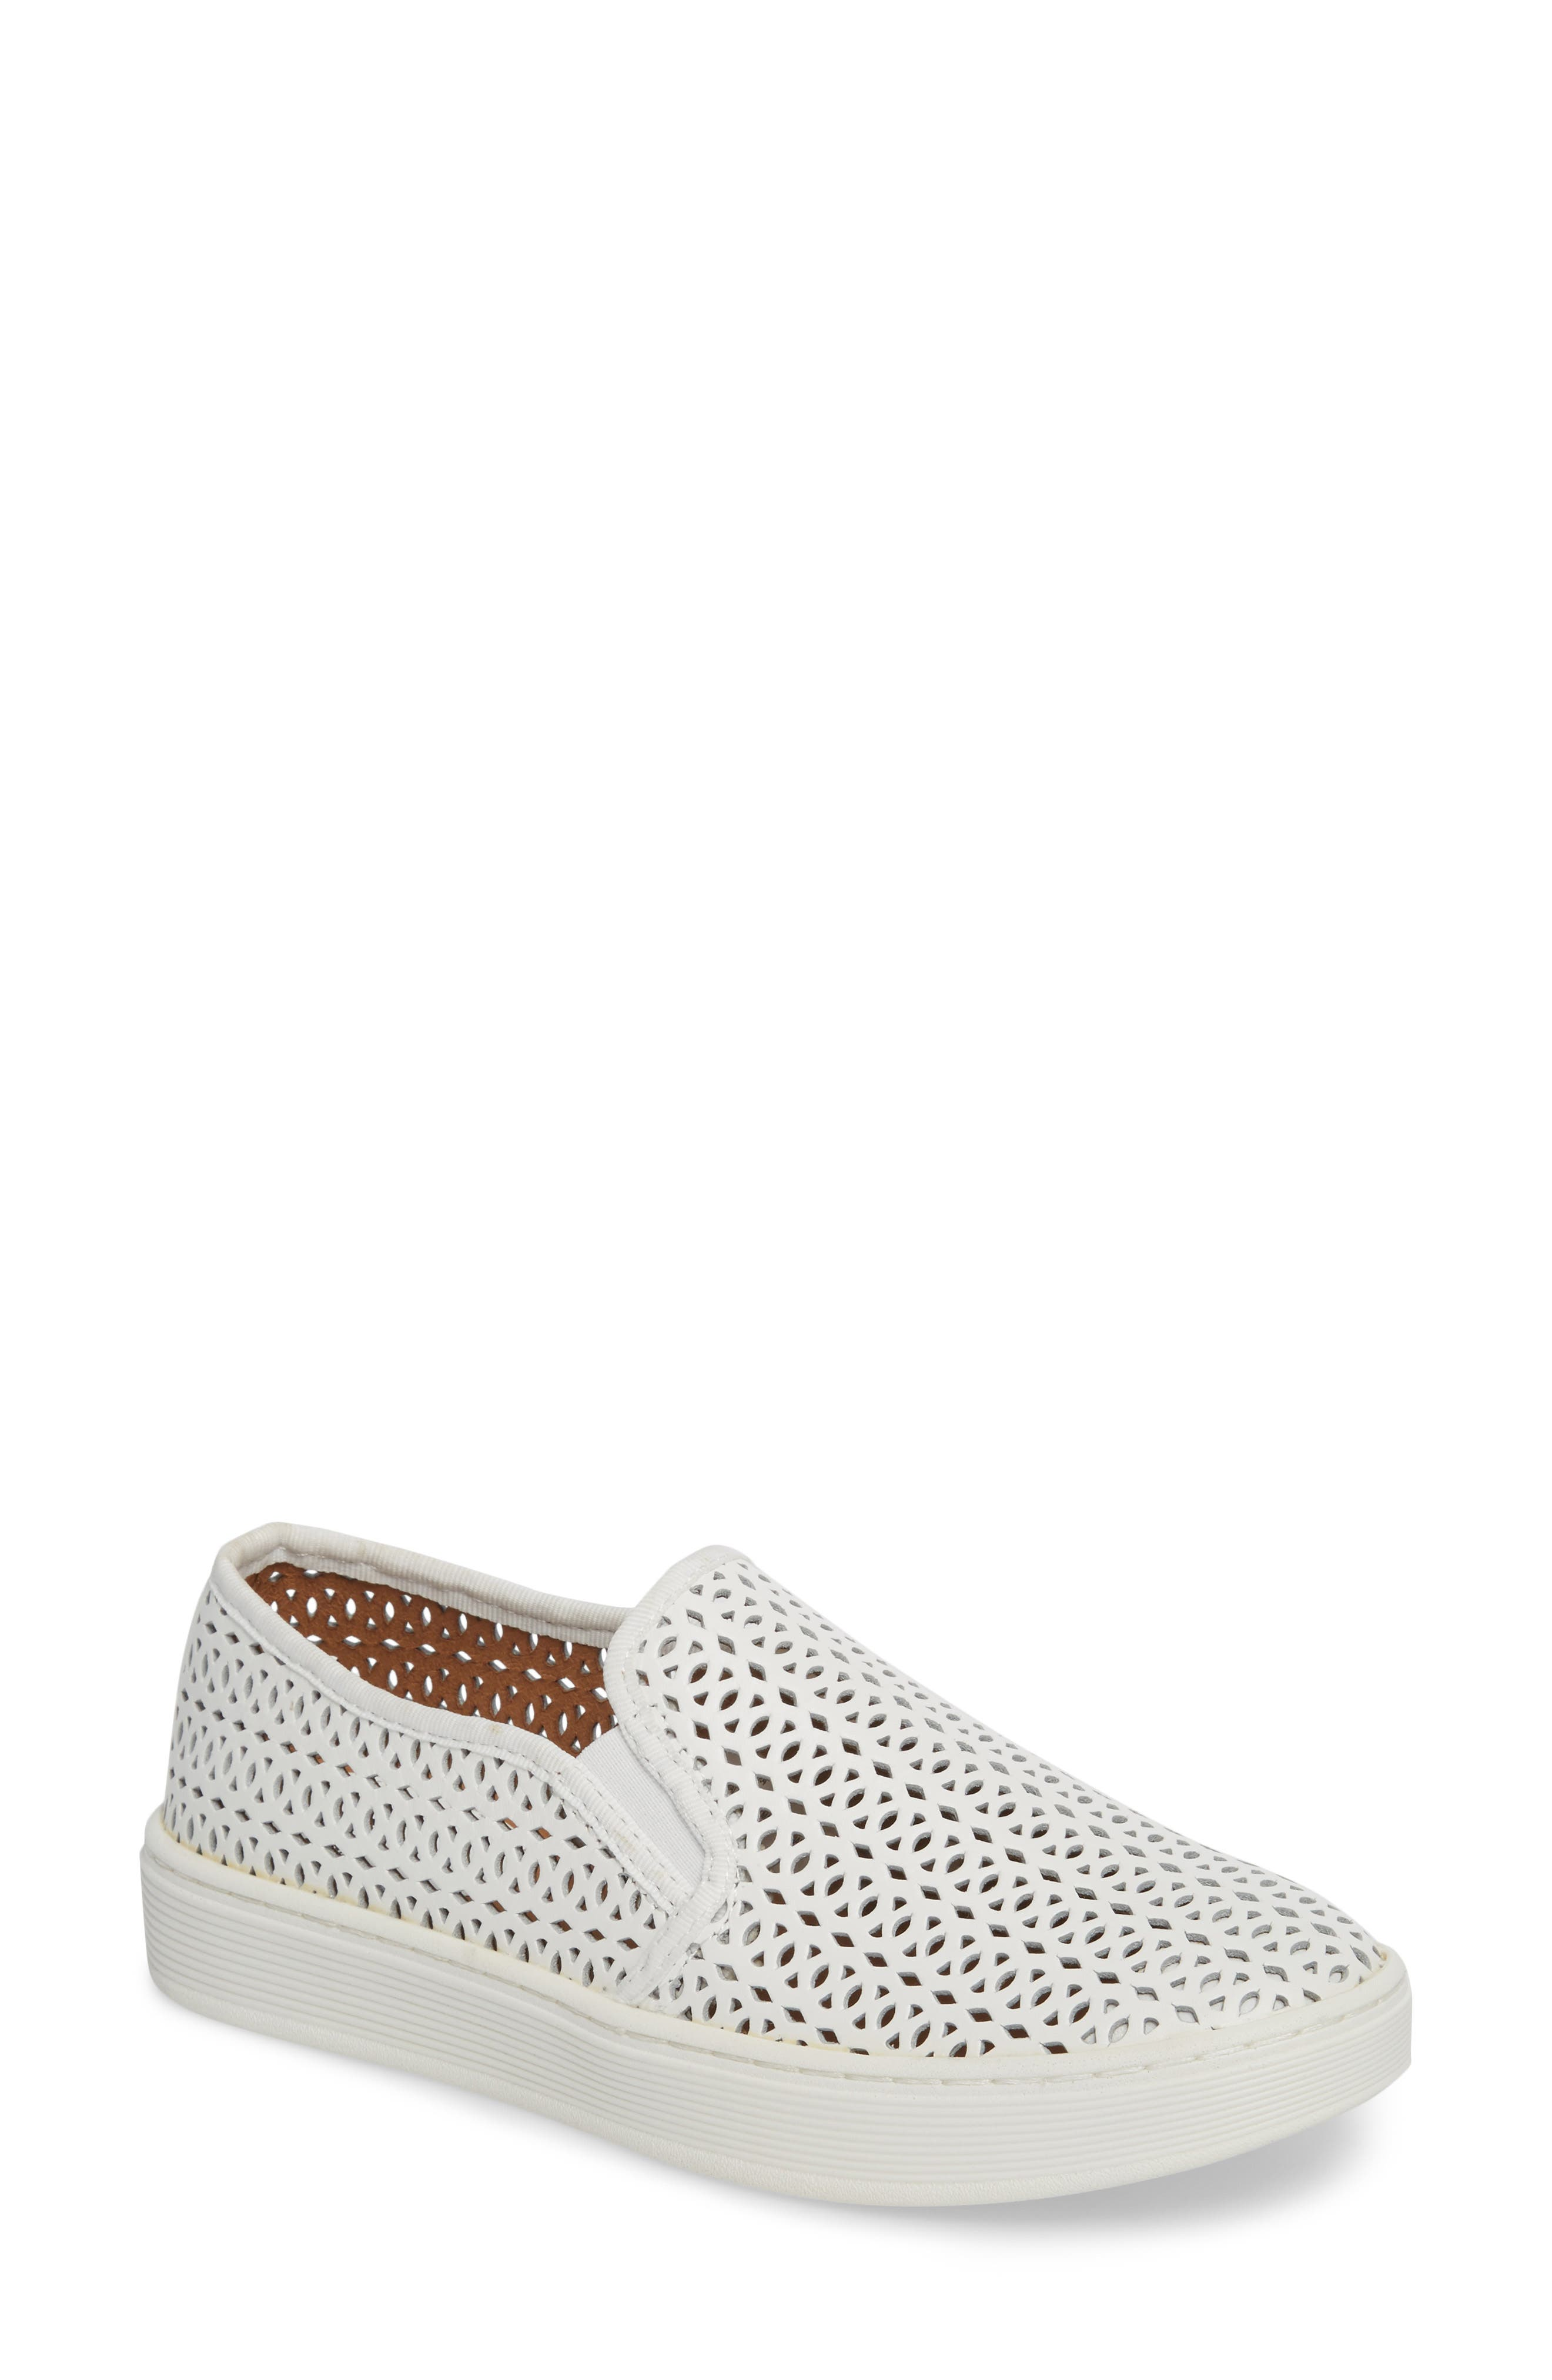 Somers II Slip-On Sneaker,                         Main,                         color, WHITE LEATHER